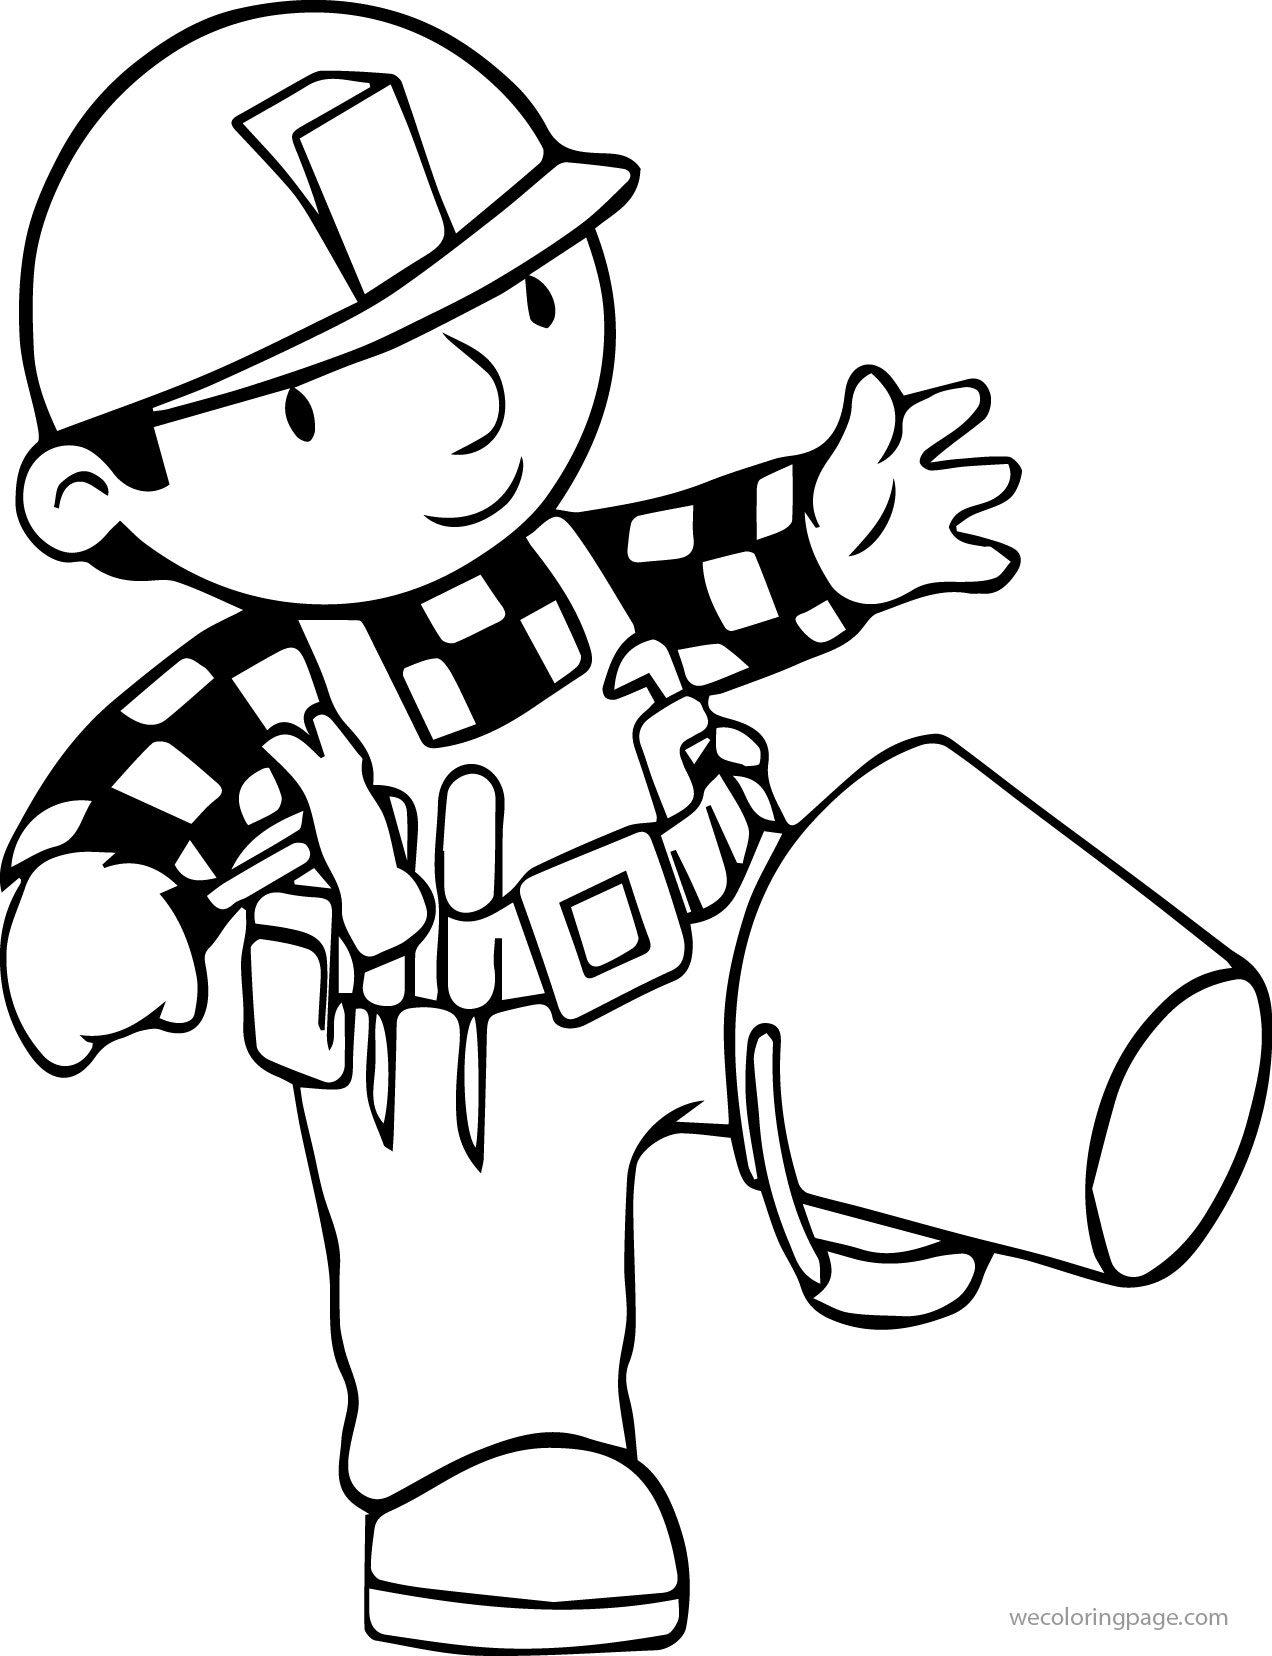 Bob The Builder Oops Coloring Page